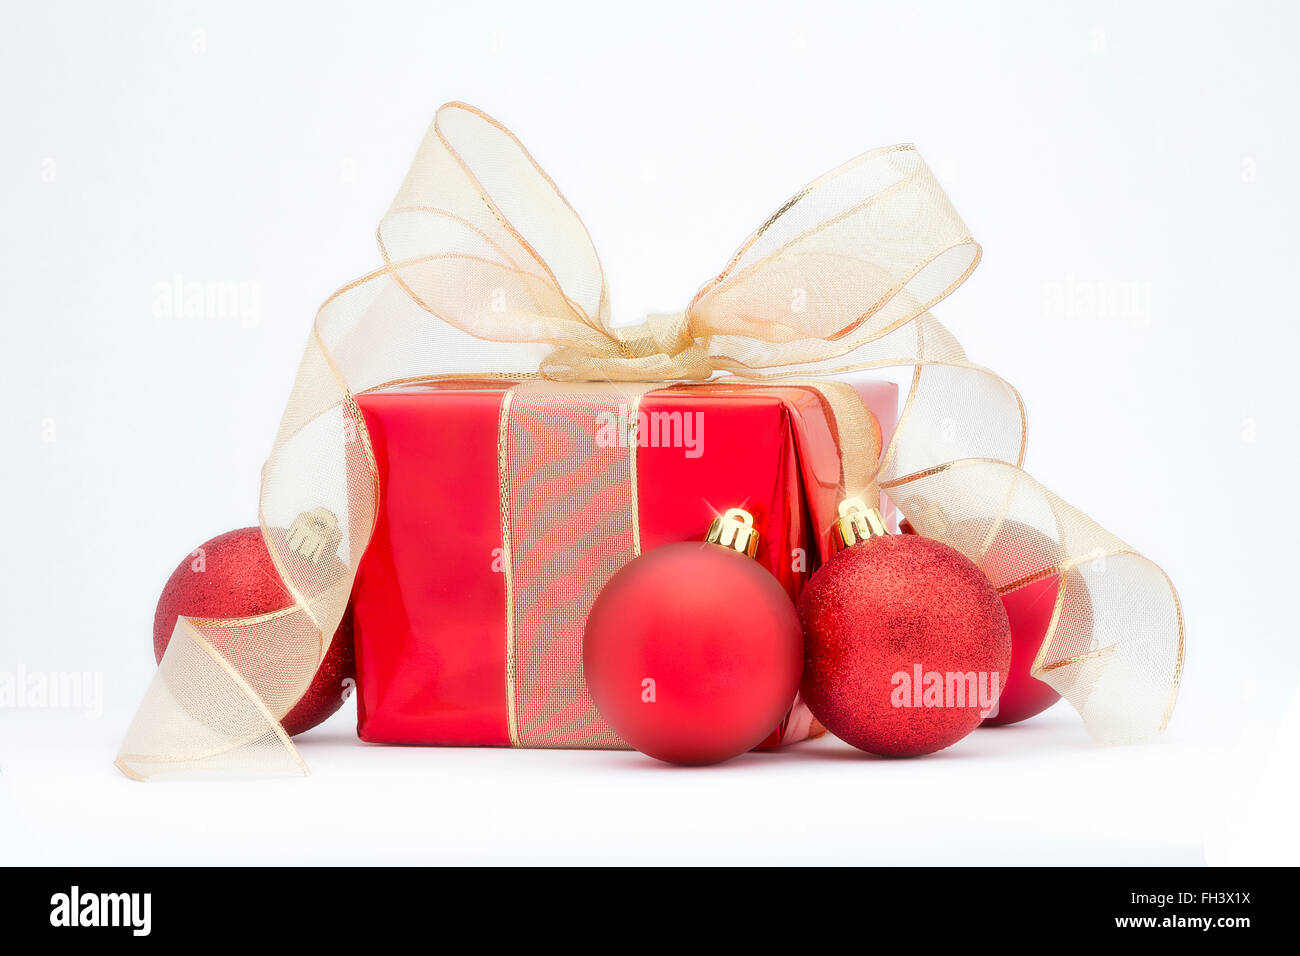 Christmas Present Decoration.A Red Christmas Present With Gold Ribbon And Red Tree